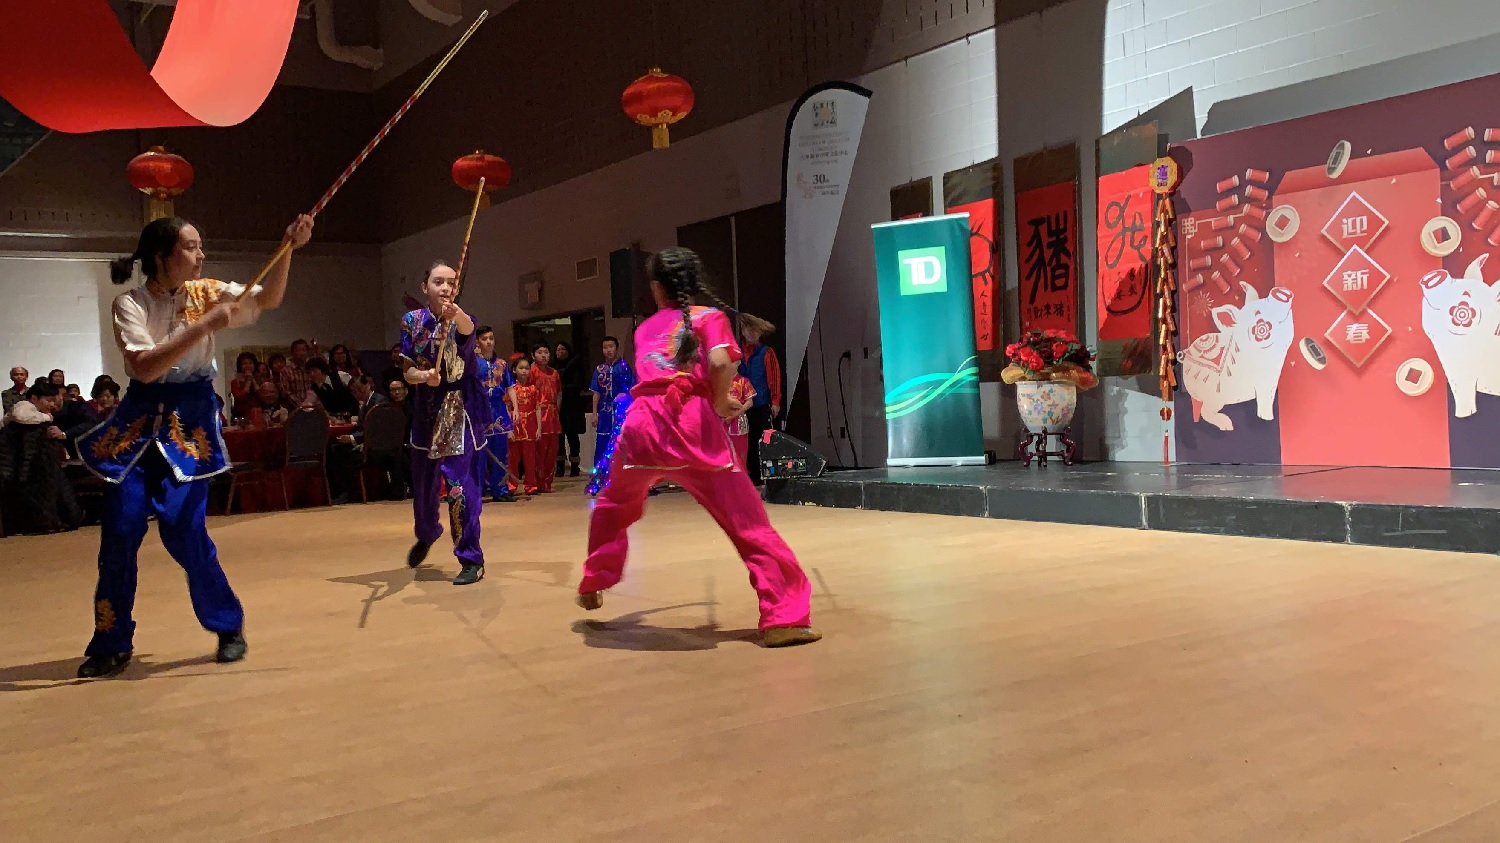 wayland-li-wushu-year-of-the-pig-dinner-chinese-cultural-centre-2019-08.jpg